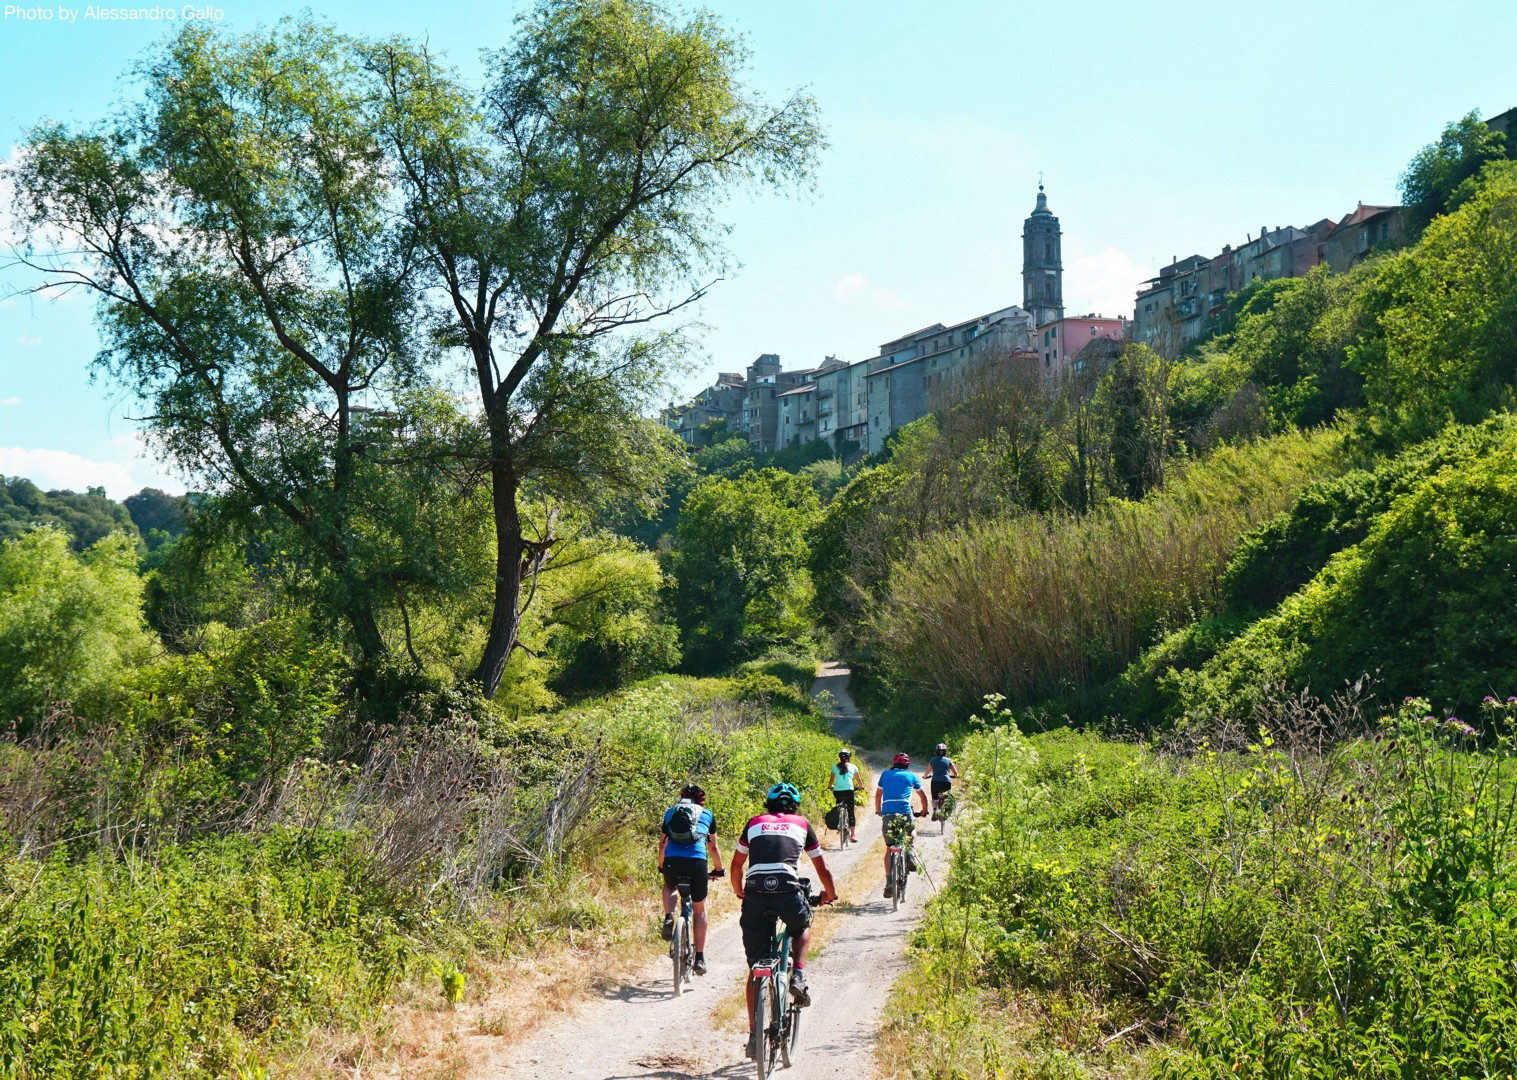 Italy-Via-Francigena-Tuscany-to-Rome-Guided-Leisure-Cycling-Holiday-on-the-way-to-rome - Italy - Via Francigena (Tuscany to Rome) - Guided Leisure Cycling Holiday - Leisure Cycling